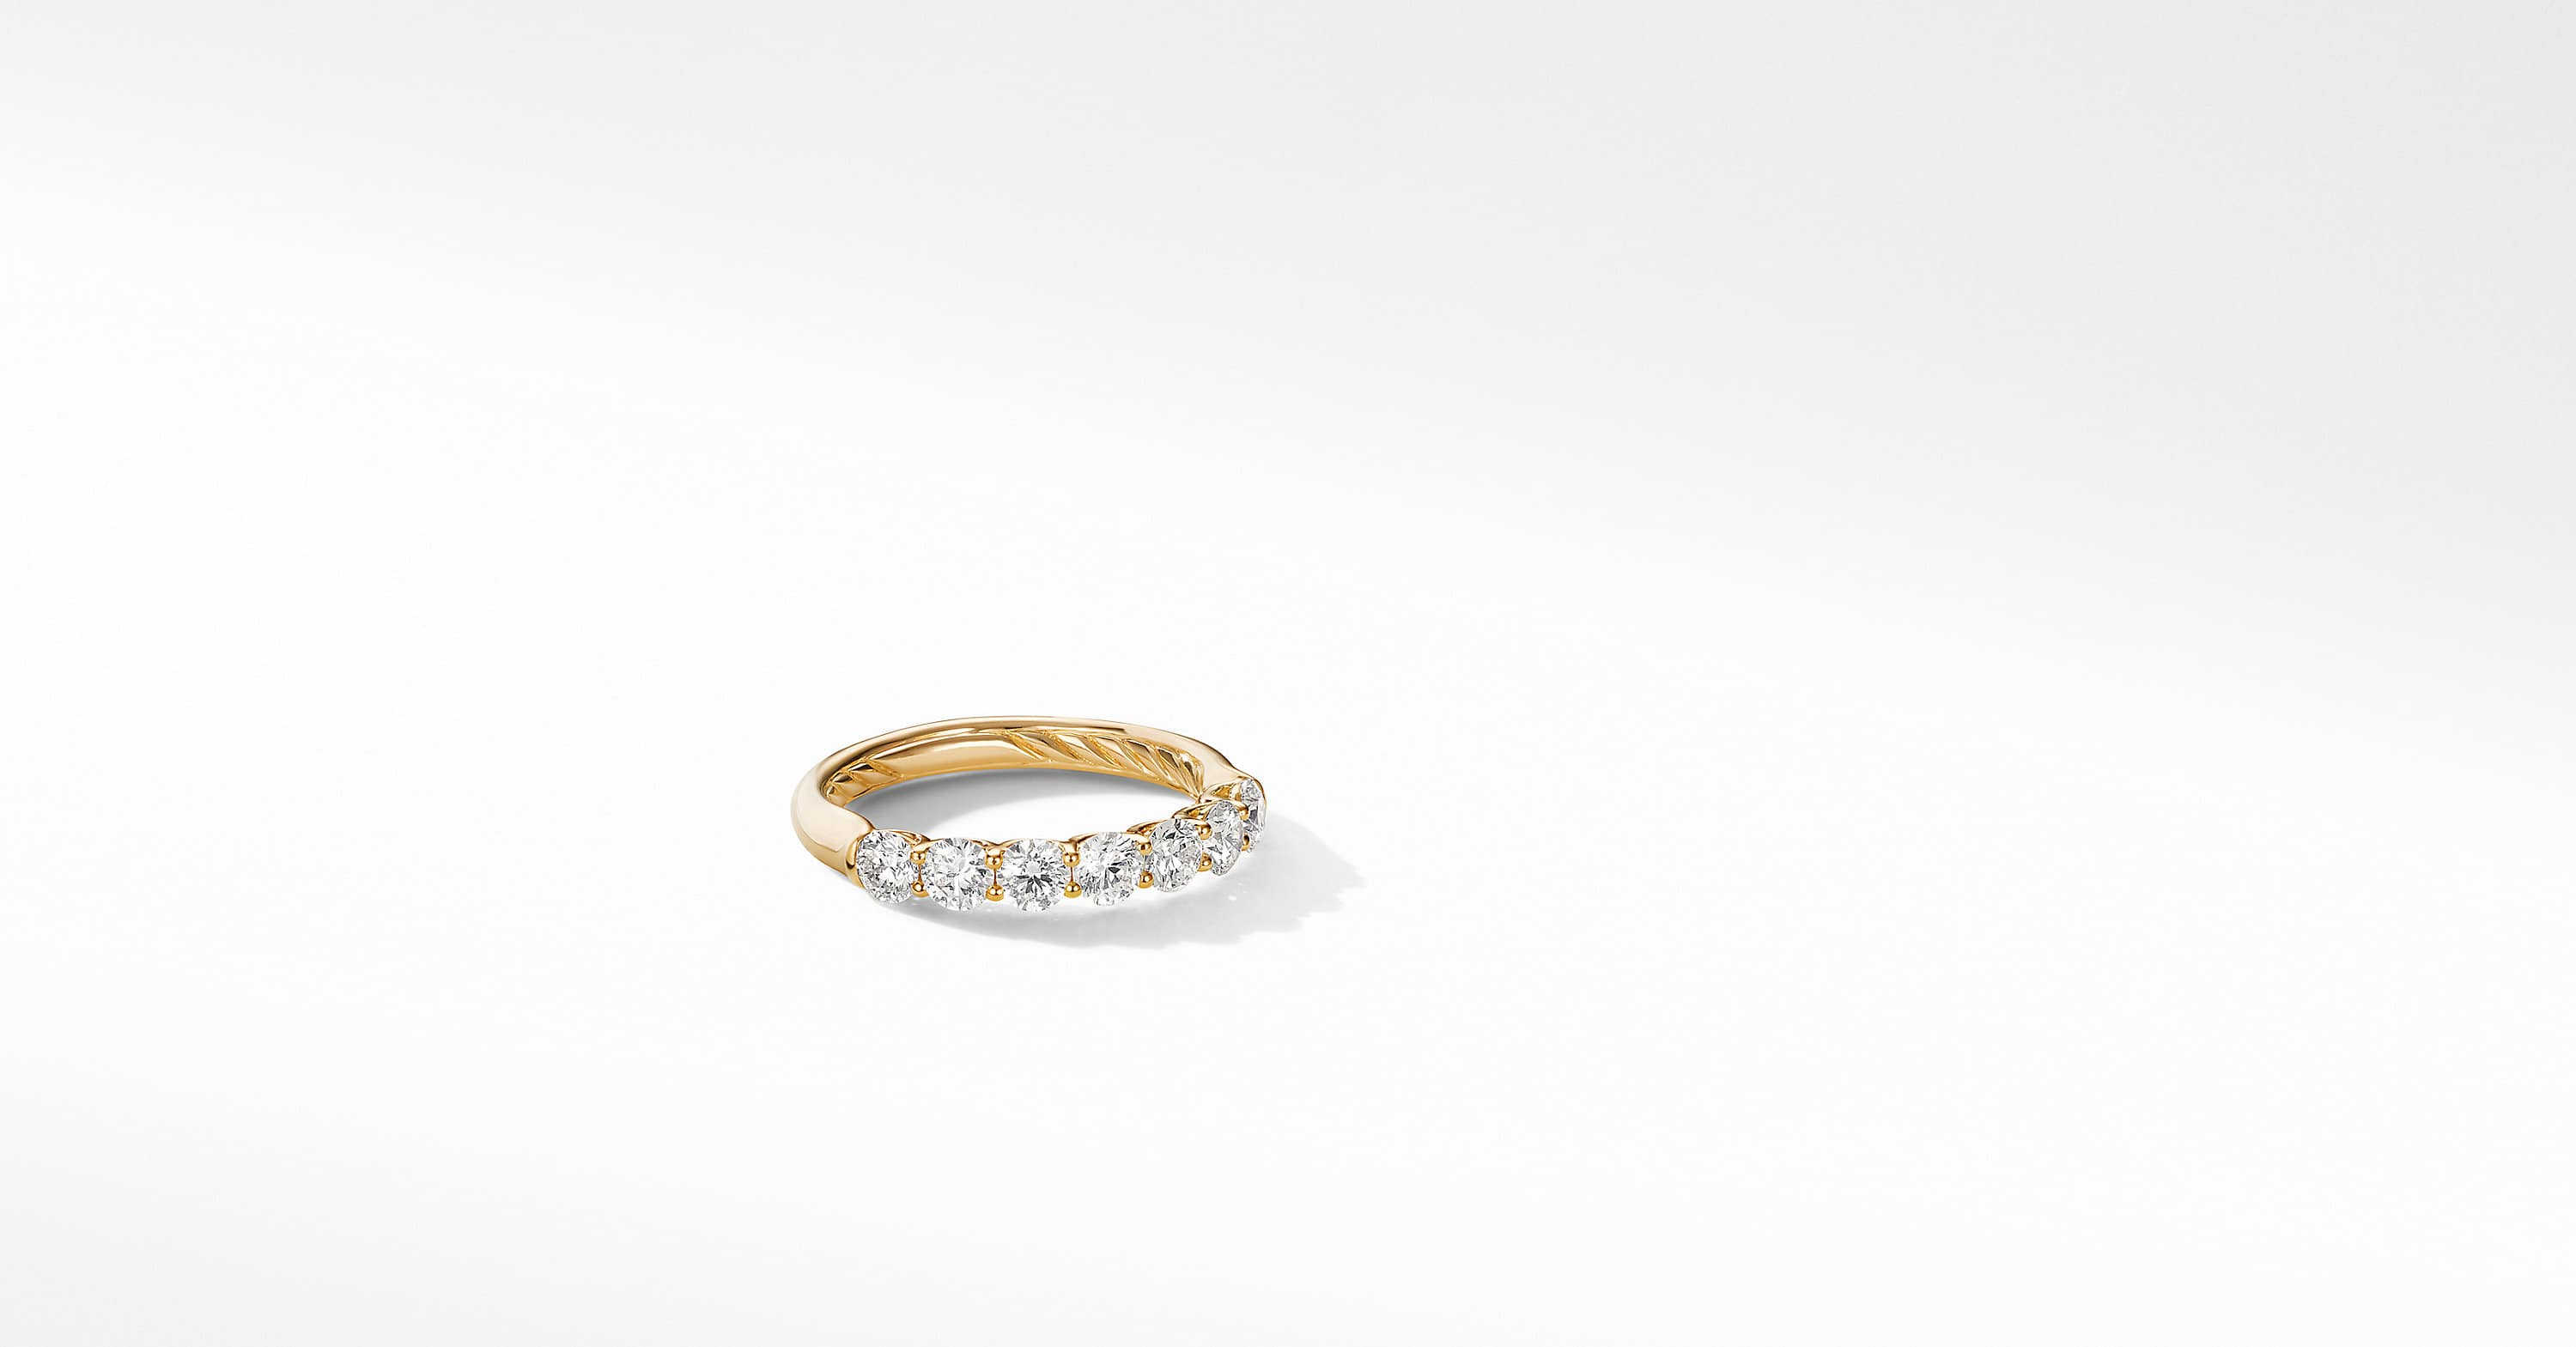 DY Eden Halfway Wedding Band in 18K Yellow Gold with Diamonds, 3.4mm